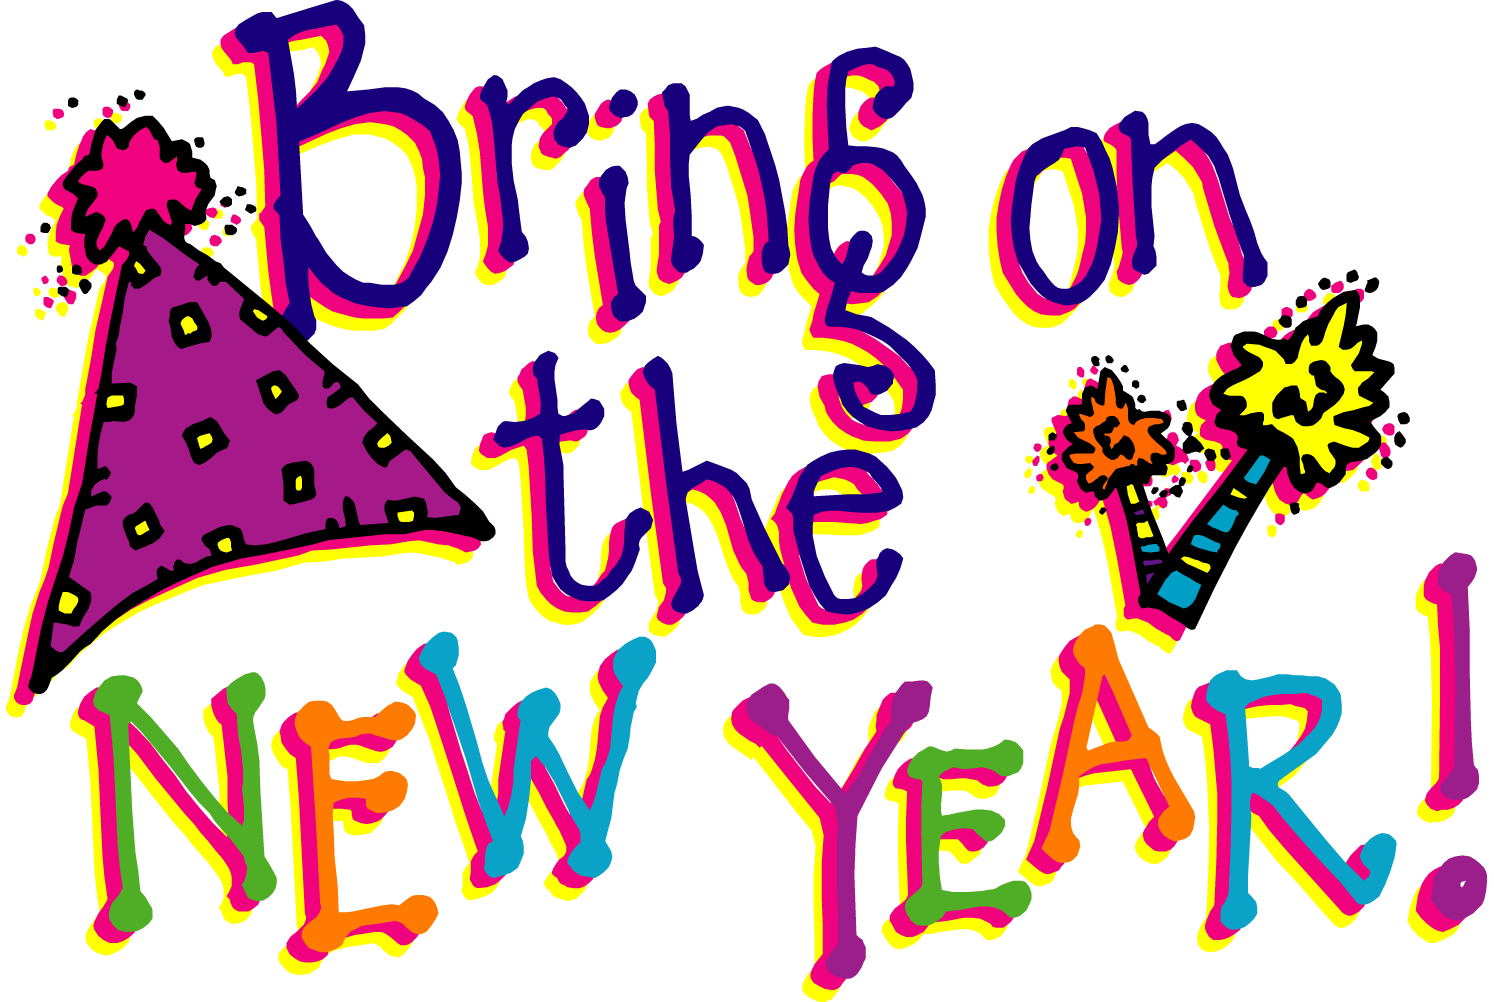 Year eve clipart fireworks. Free new years pictures